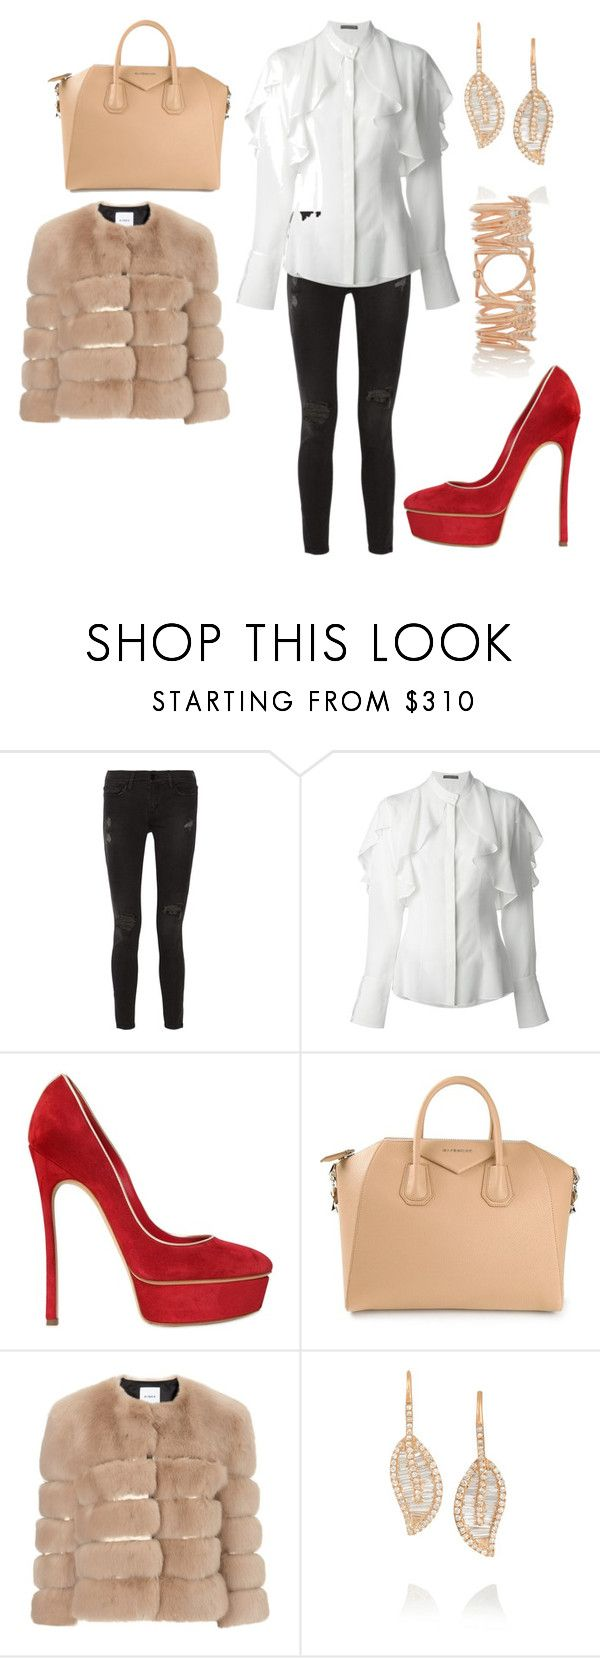 """Untitled #26783"" by edasn12 ❤ liked on Polyvore featuring Frame, Alexander McQueen, Casadei, Givenchy, AINEA, Anita Ko and Katie Rowland"